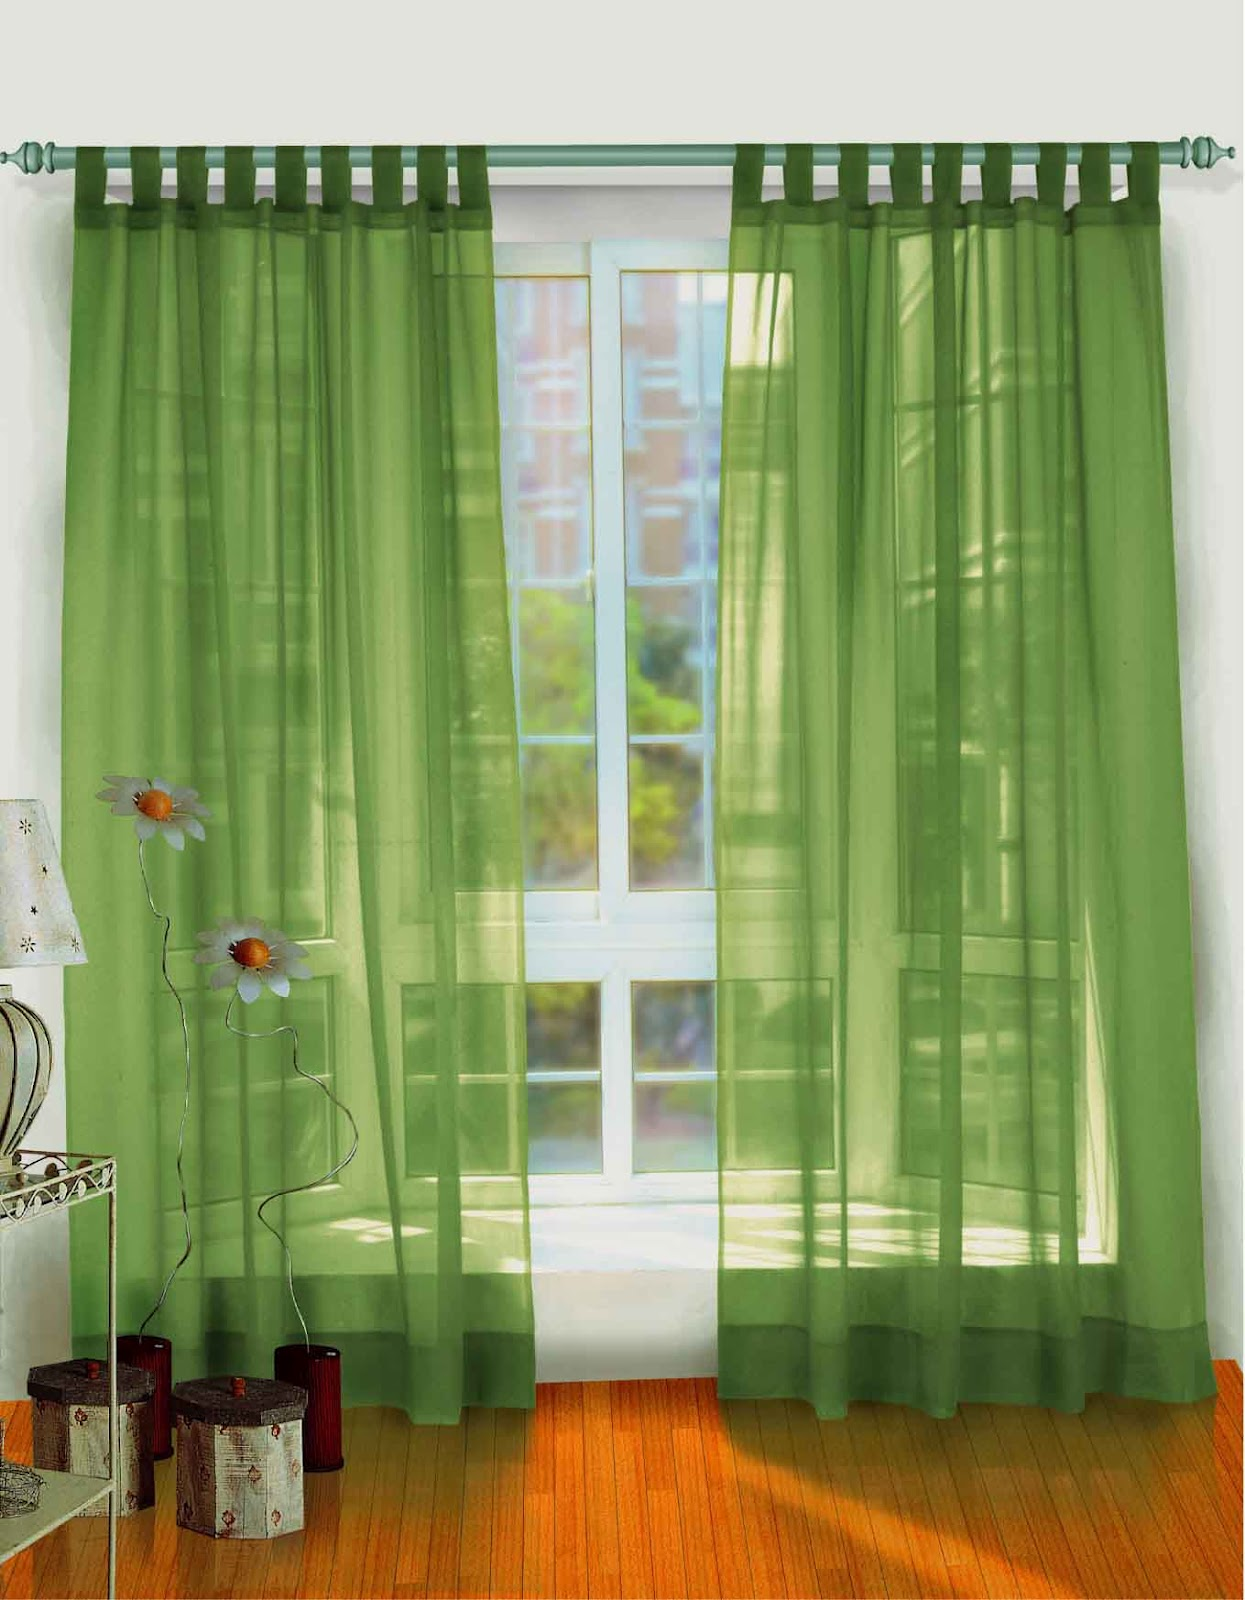 Curtain Designs Ideas: WINDOW AND DOOR CURTAINS DESIGN